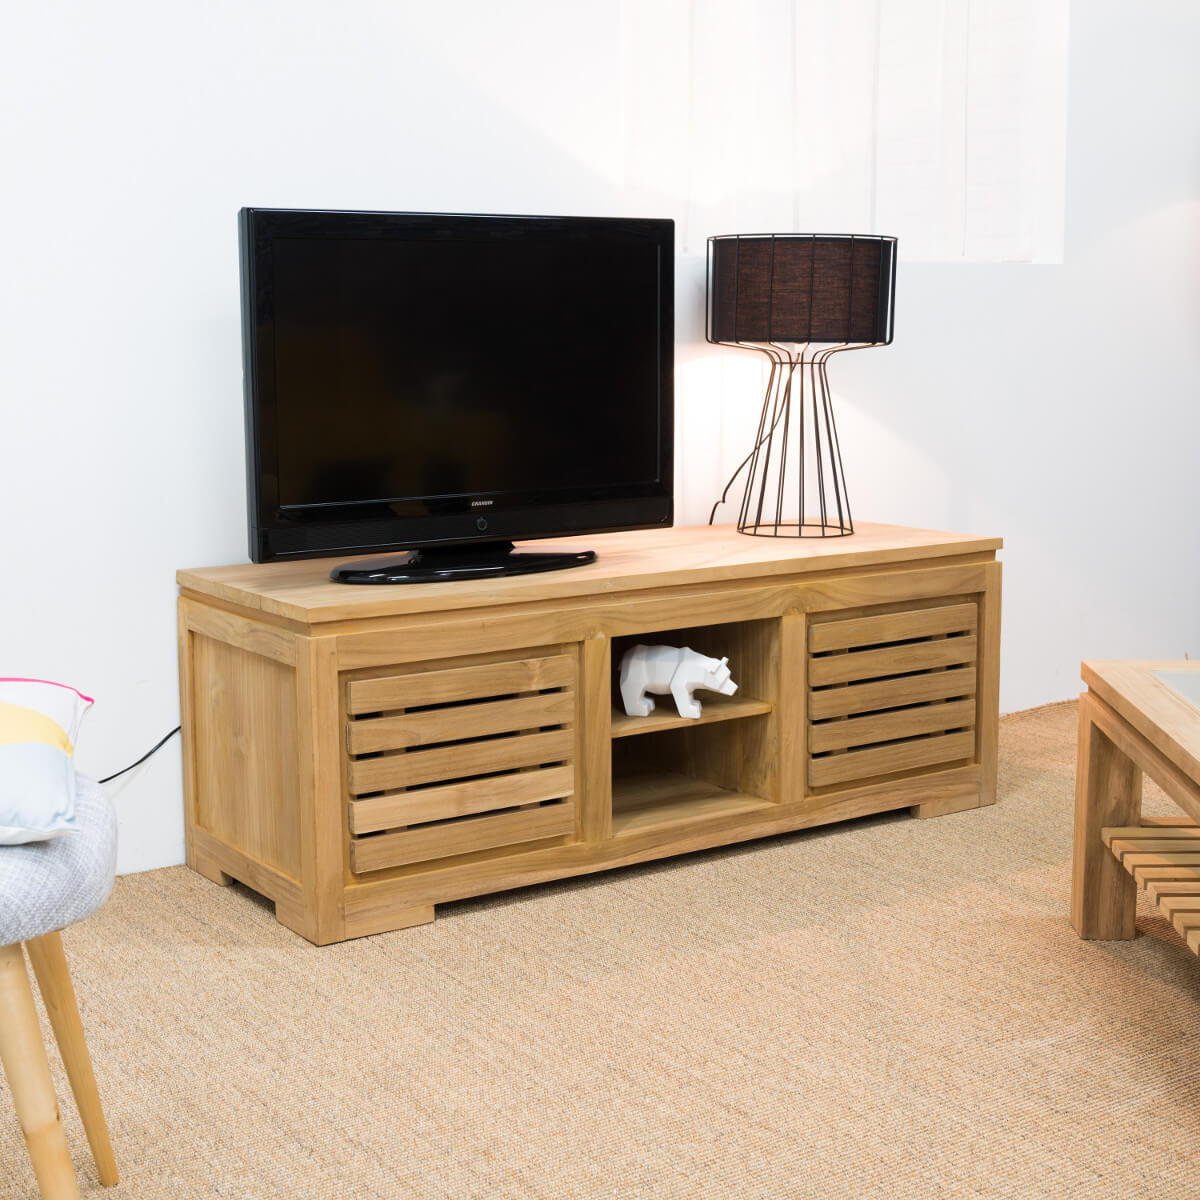 Meuble tv de salon en bois de teck massif zen rectangle naturel l 140 cm - Meuble cagette en bois ...